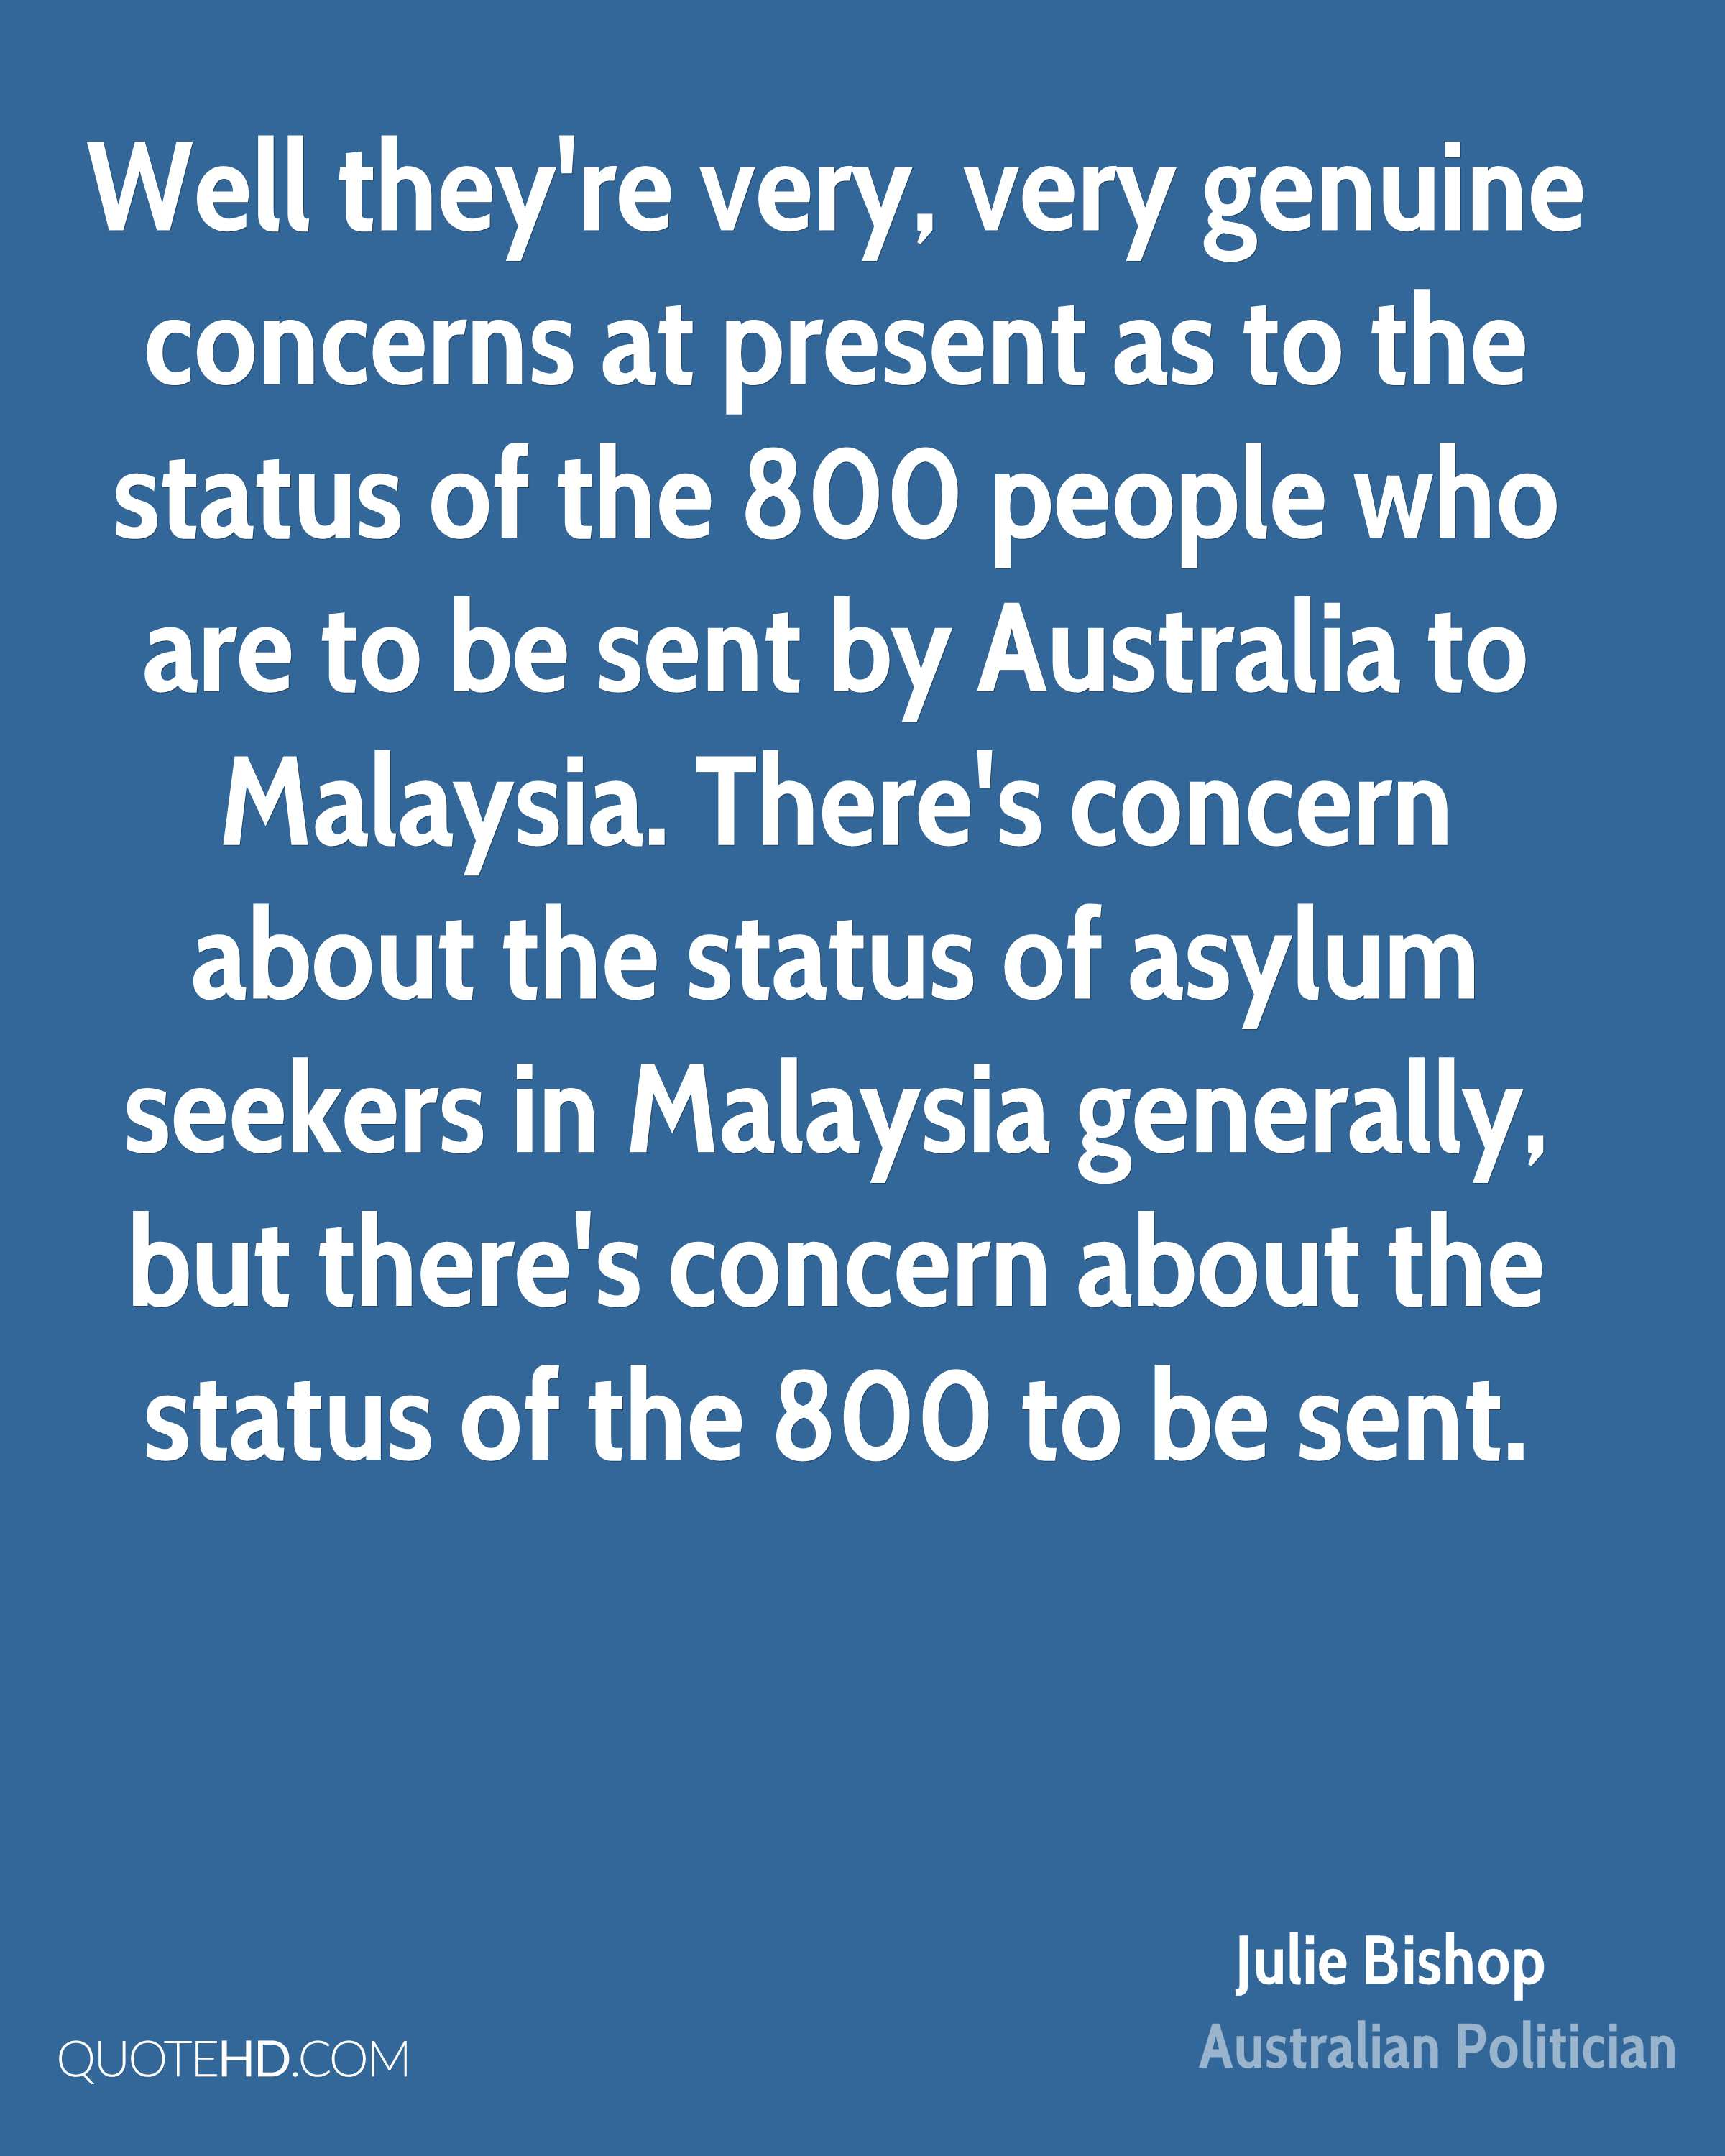 Well they're very, very genuine concerns at present as to the status of the 800 people who are to be sent by Australia to Malaysia. There's concern about the status of asylum seekers in Malaysia generally, but there's concern about the status of the 800 to be sent.